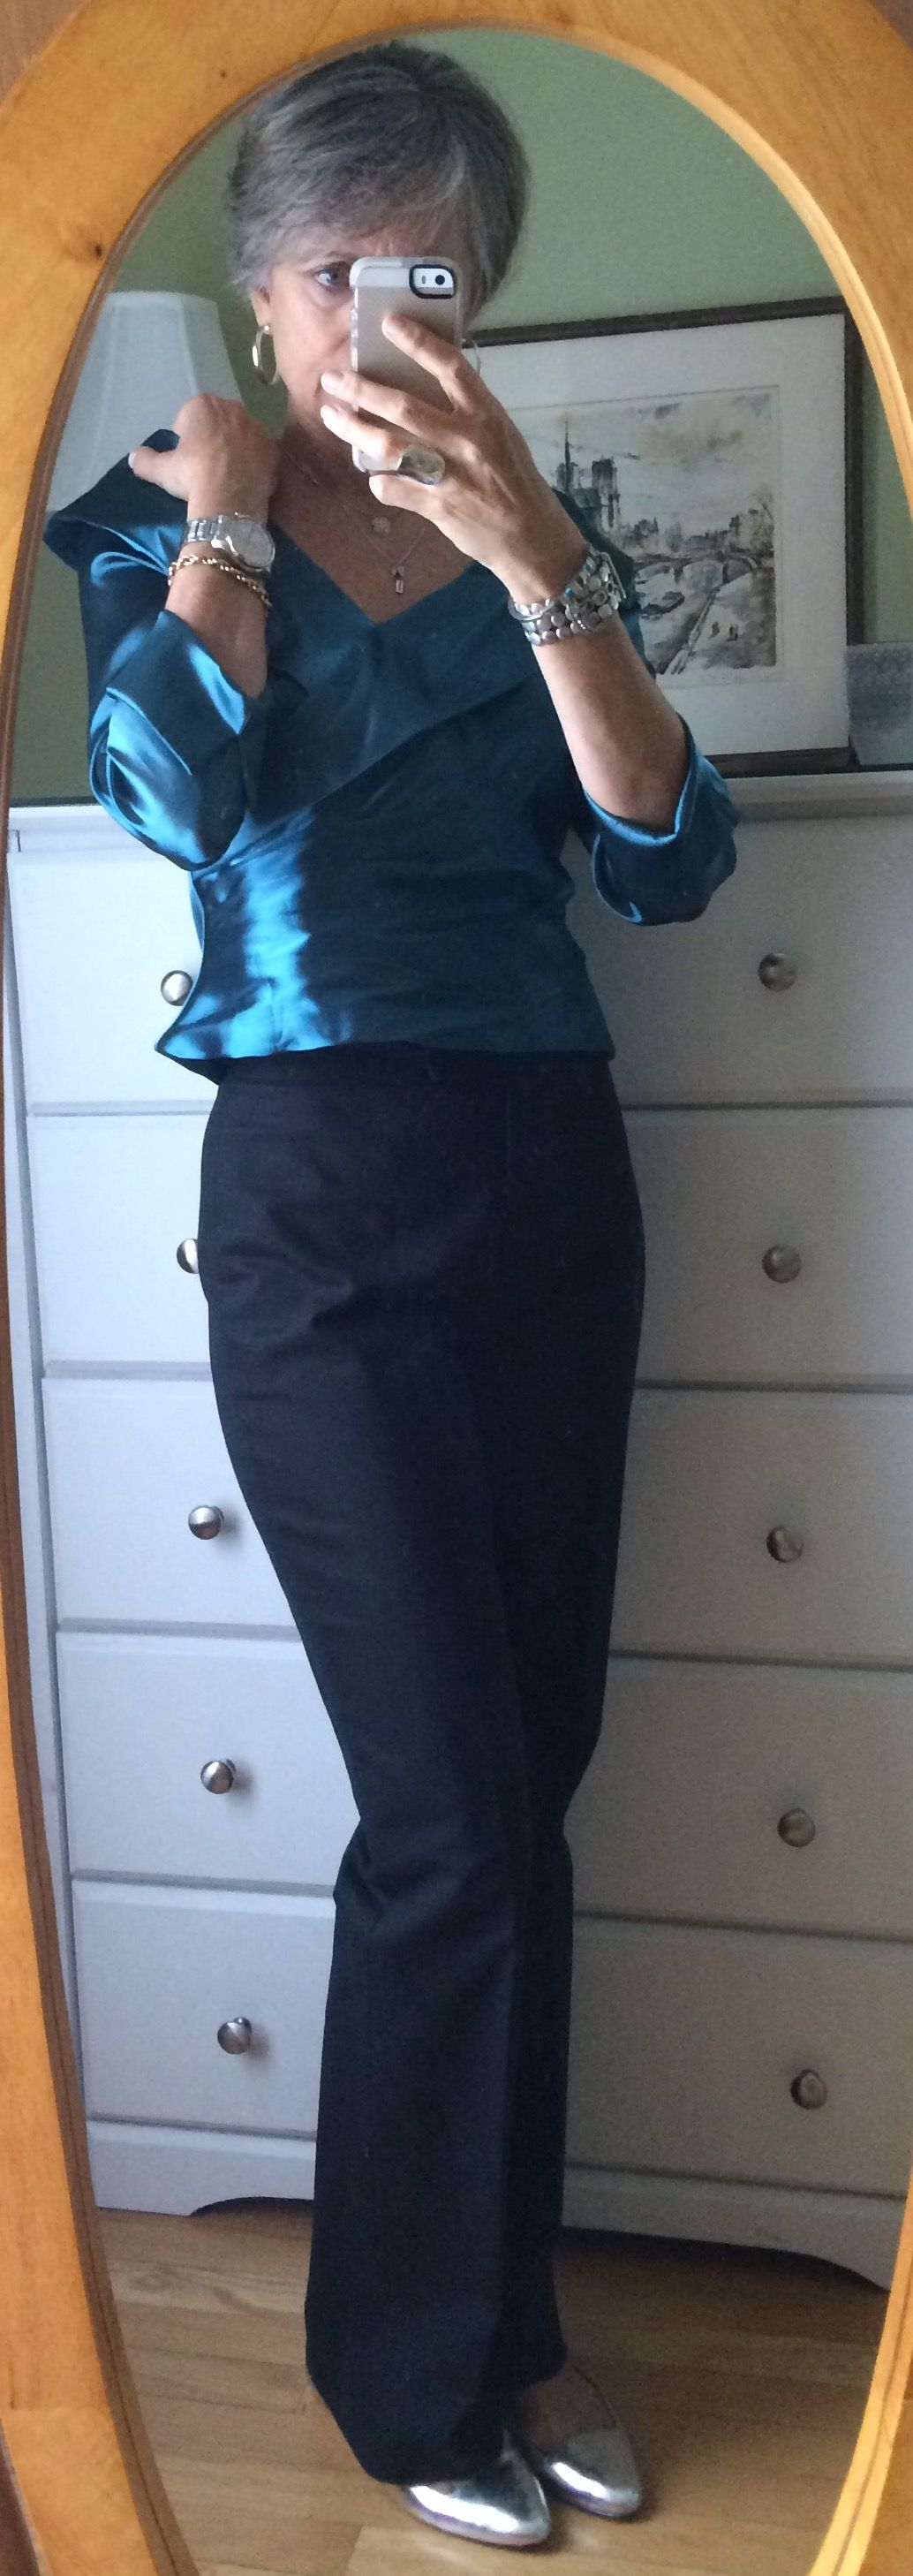 Shiny jade blouse with black pants for a mid-week  event.